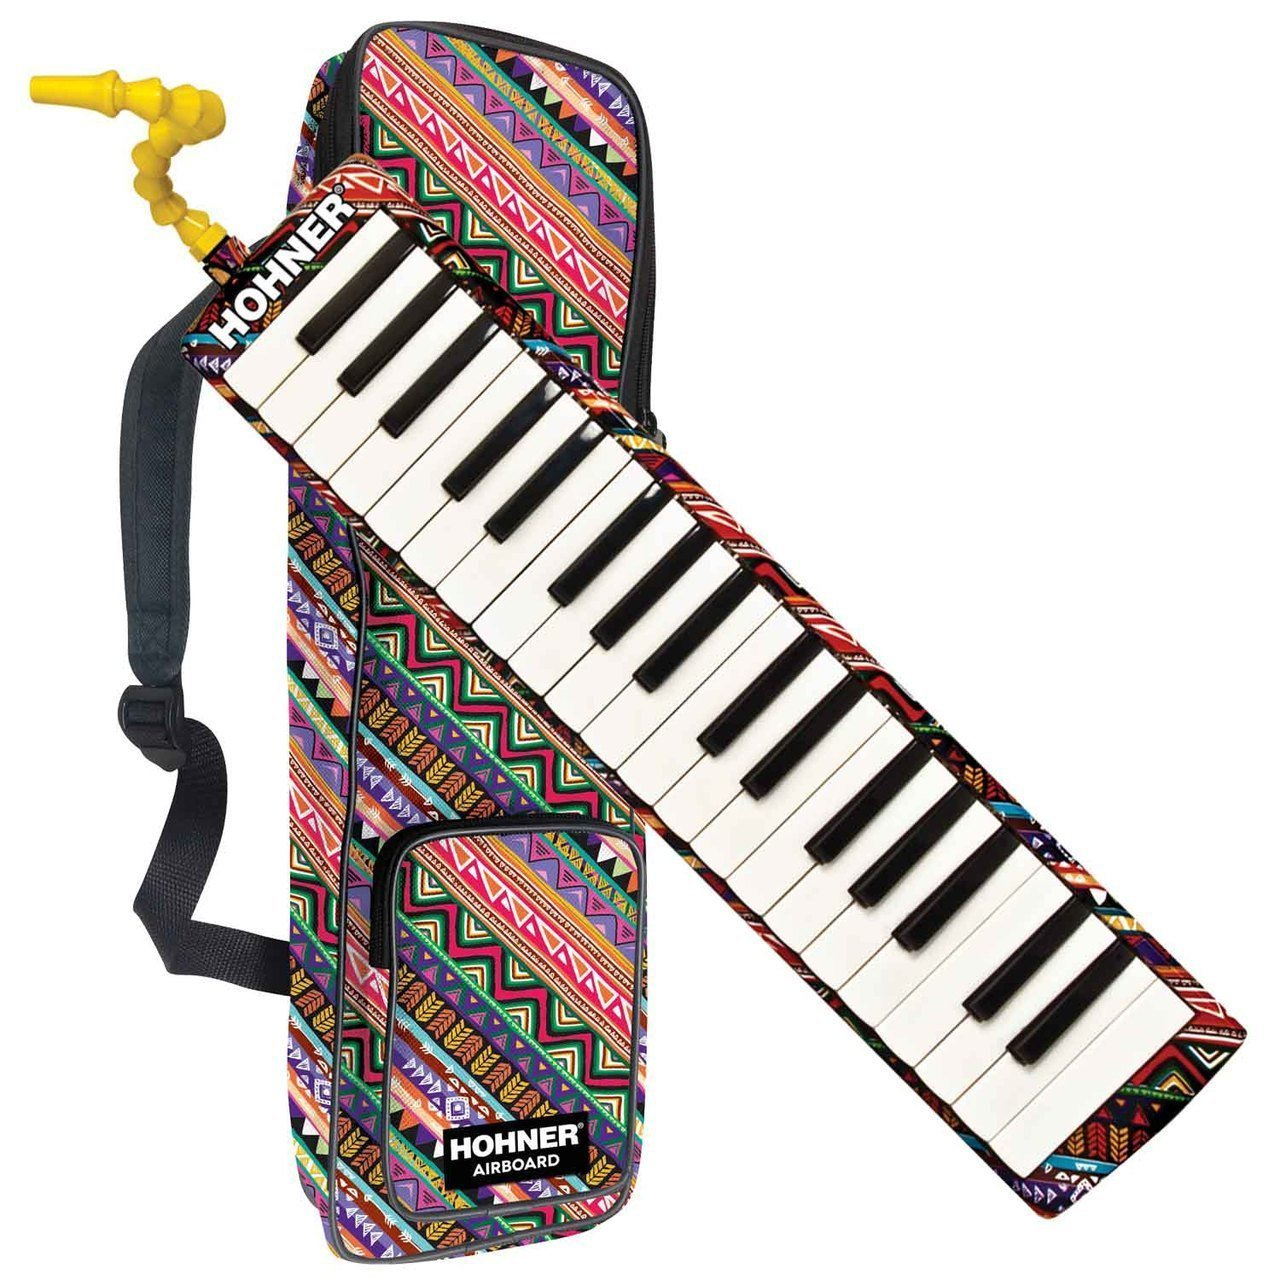 Hohner Airboard melodica